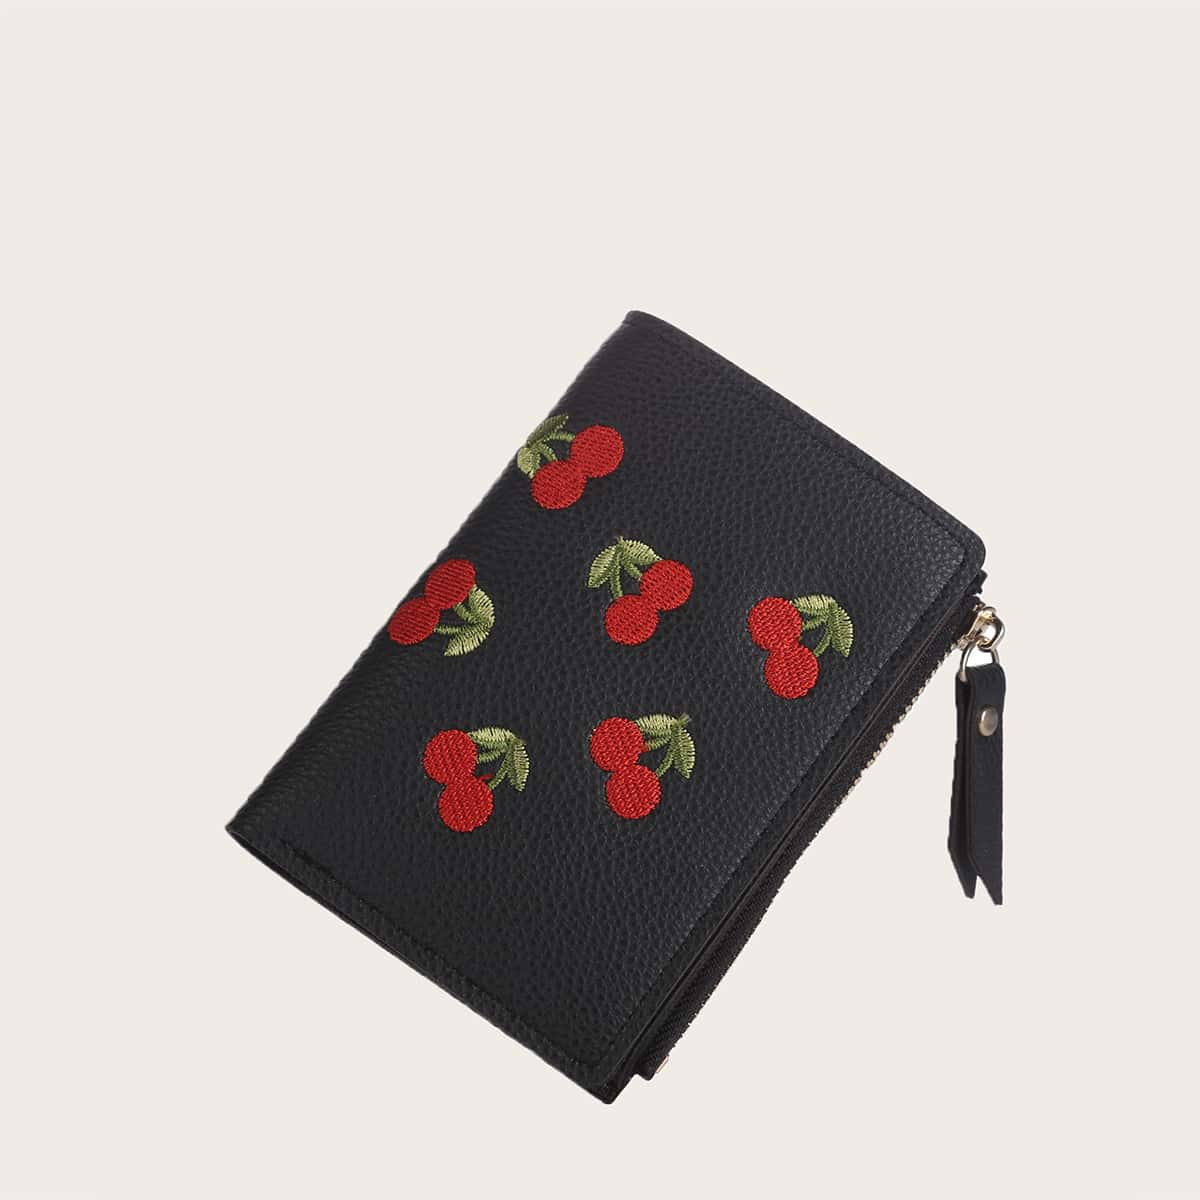 Cherry Embroidery Purse